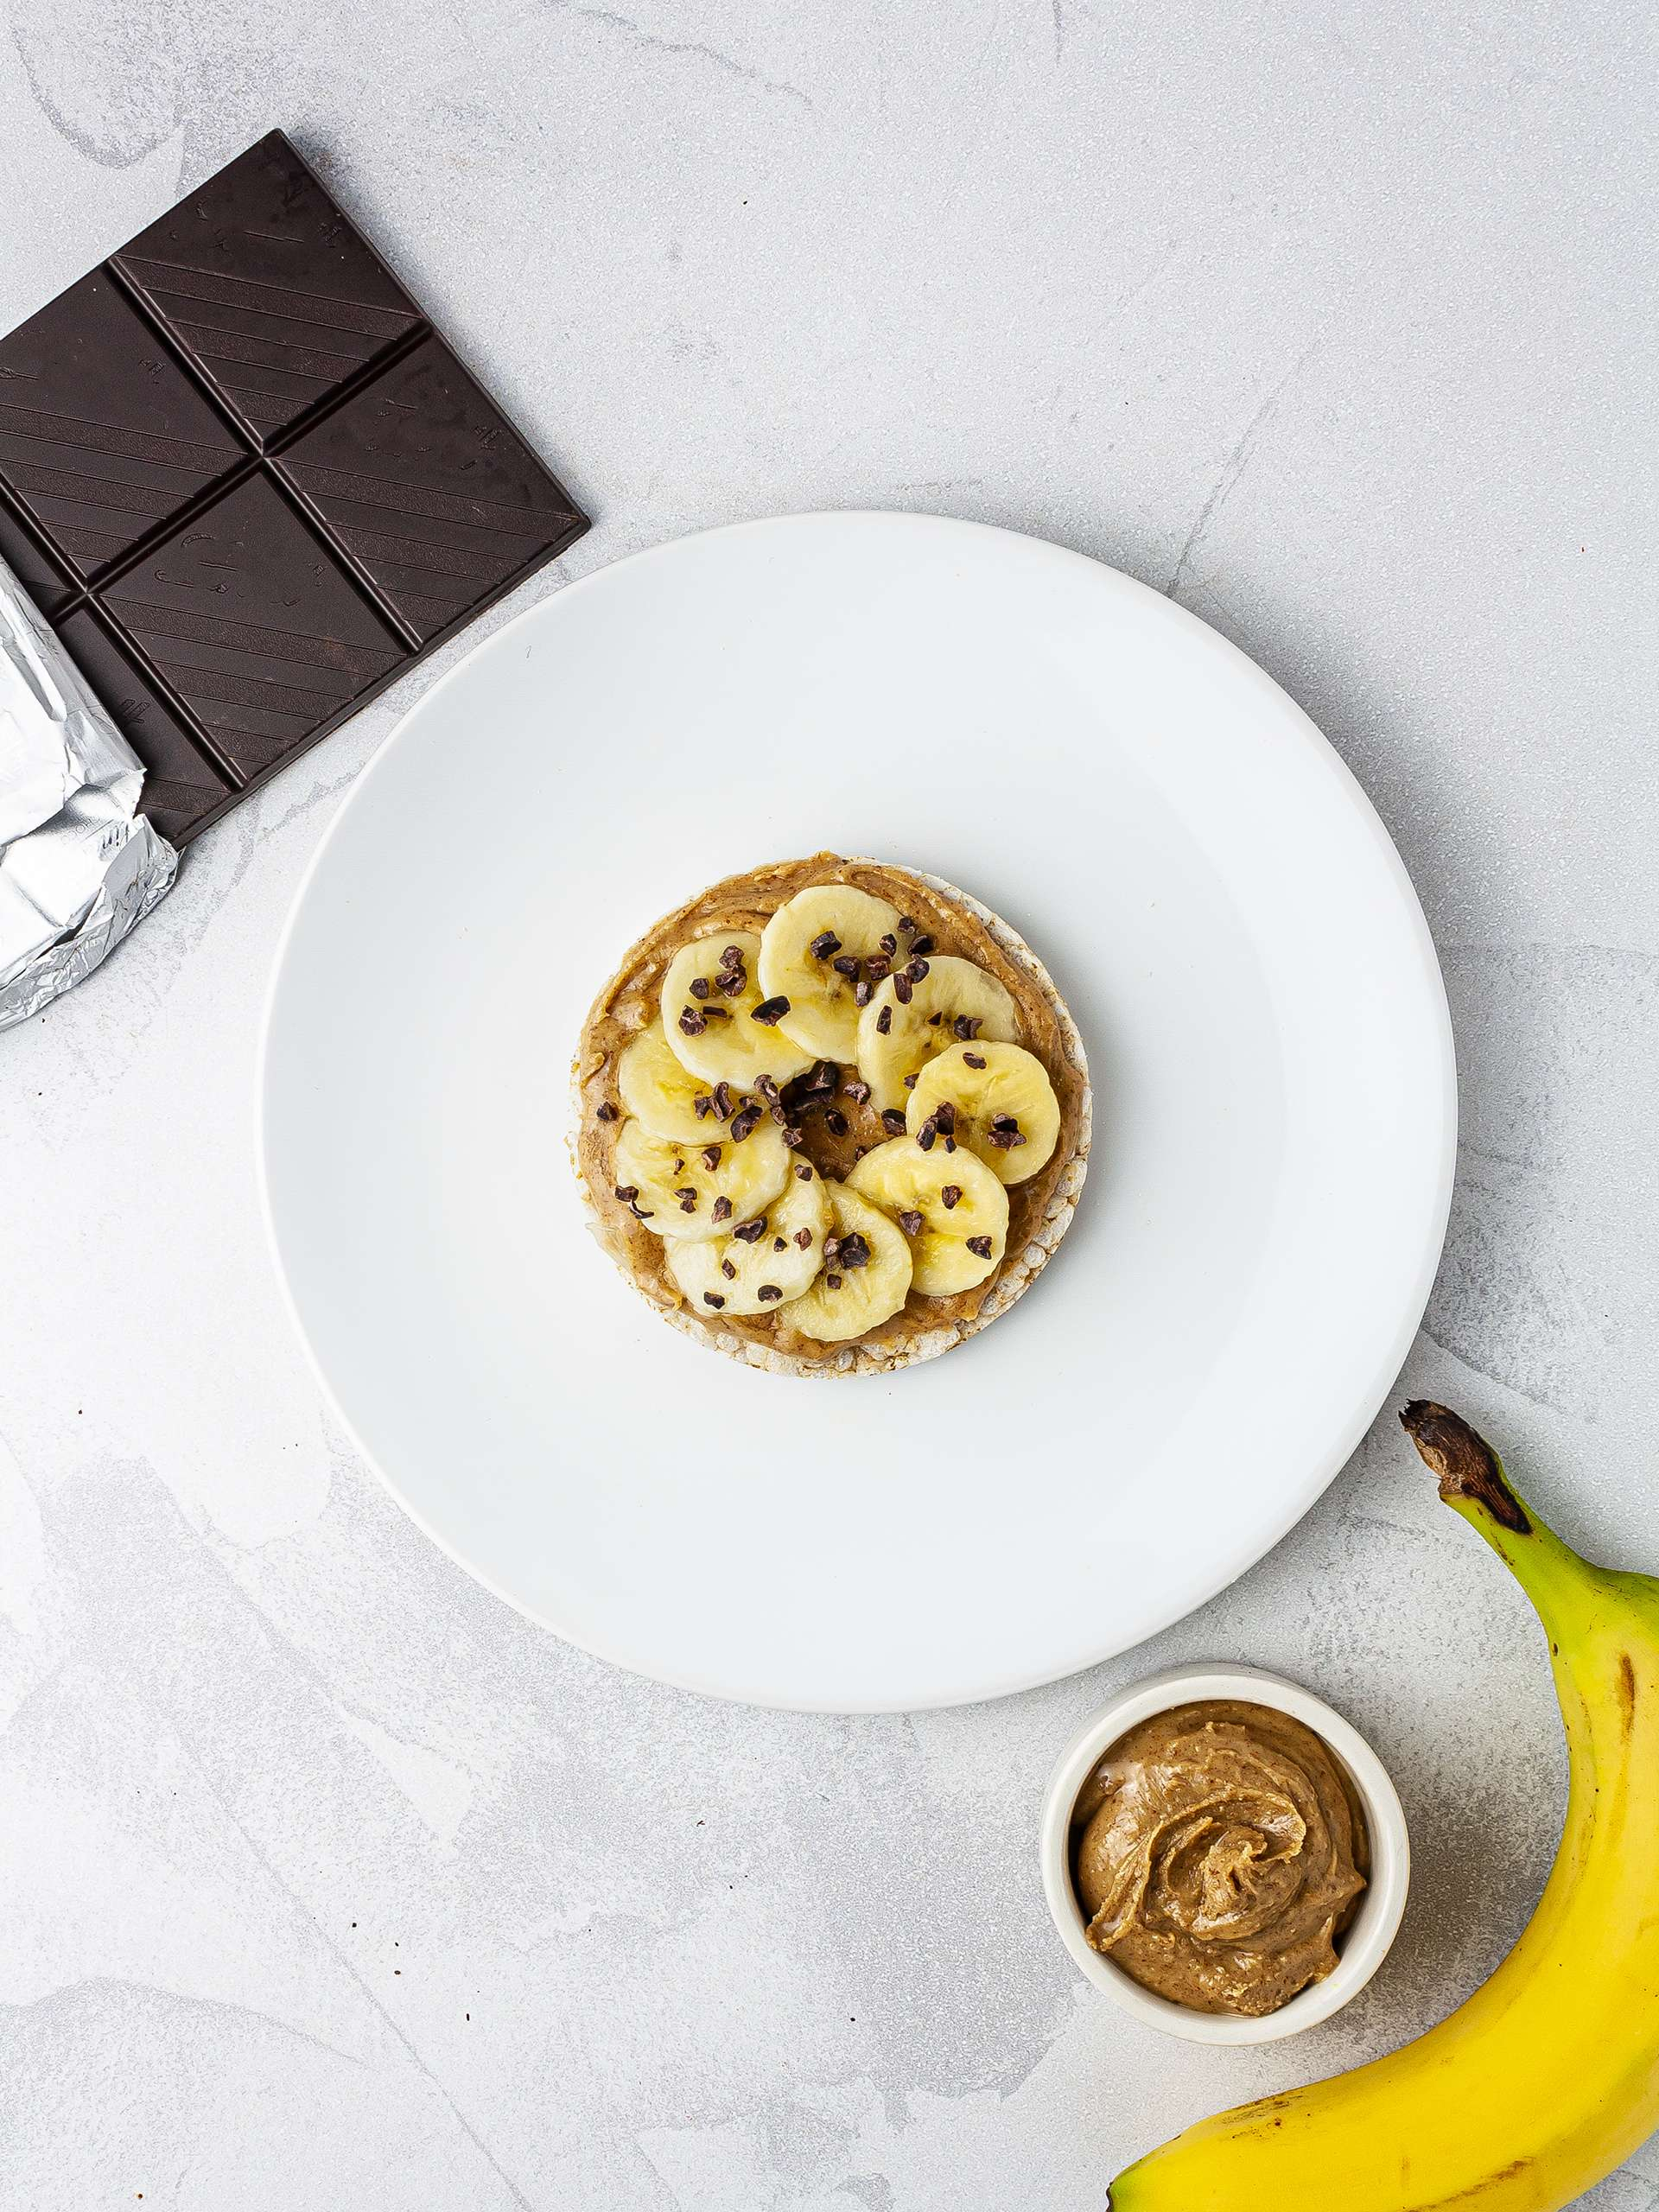 Rice cake with almond butter, sliced banana and chocolate chips.